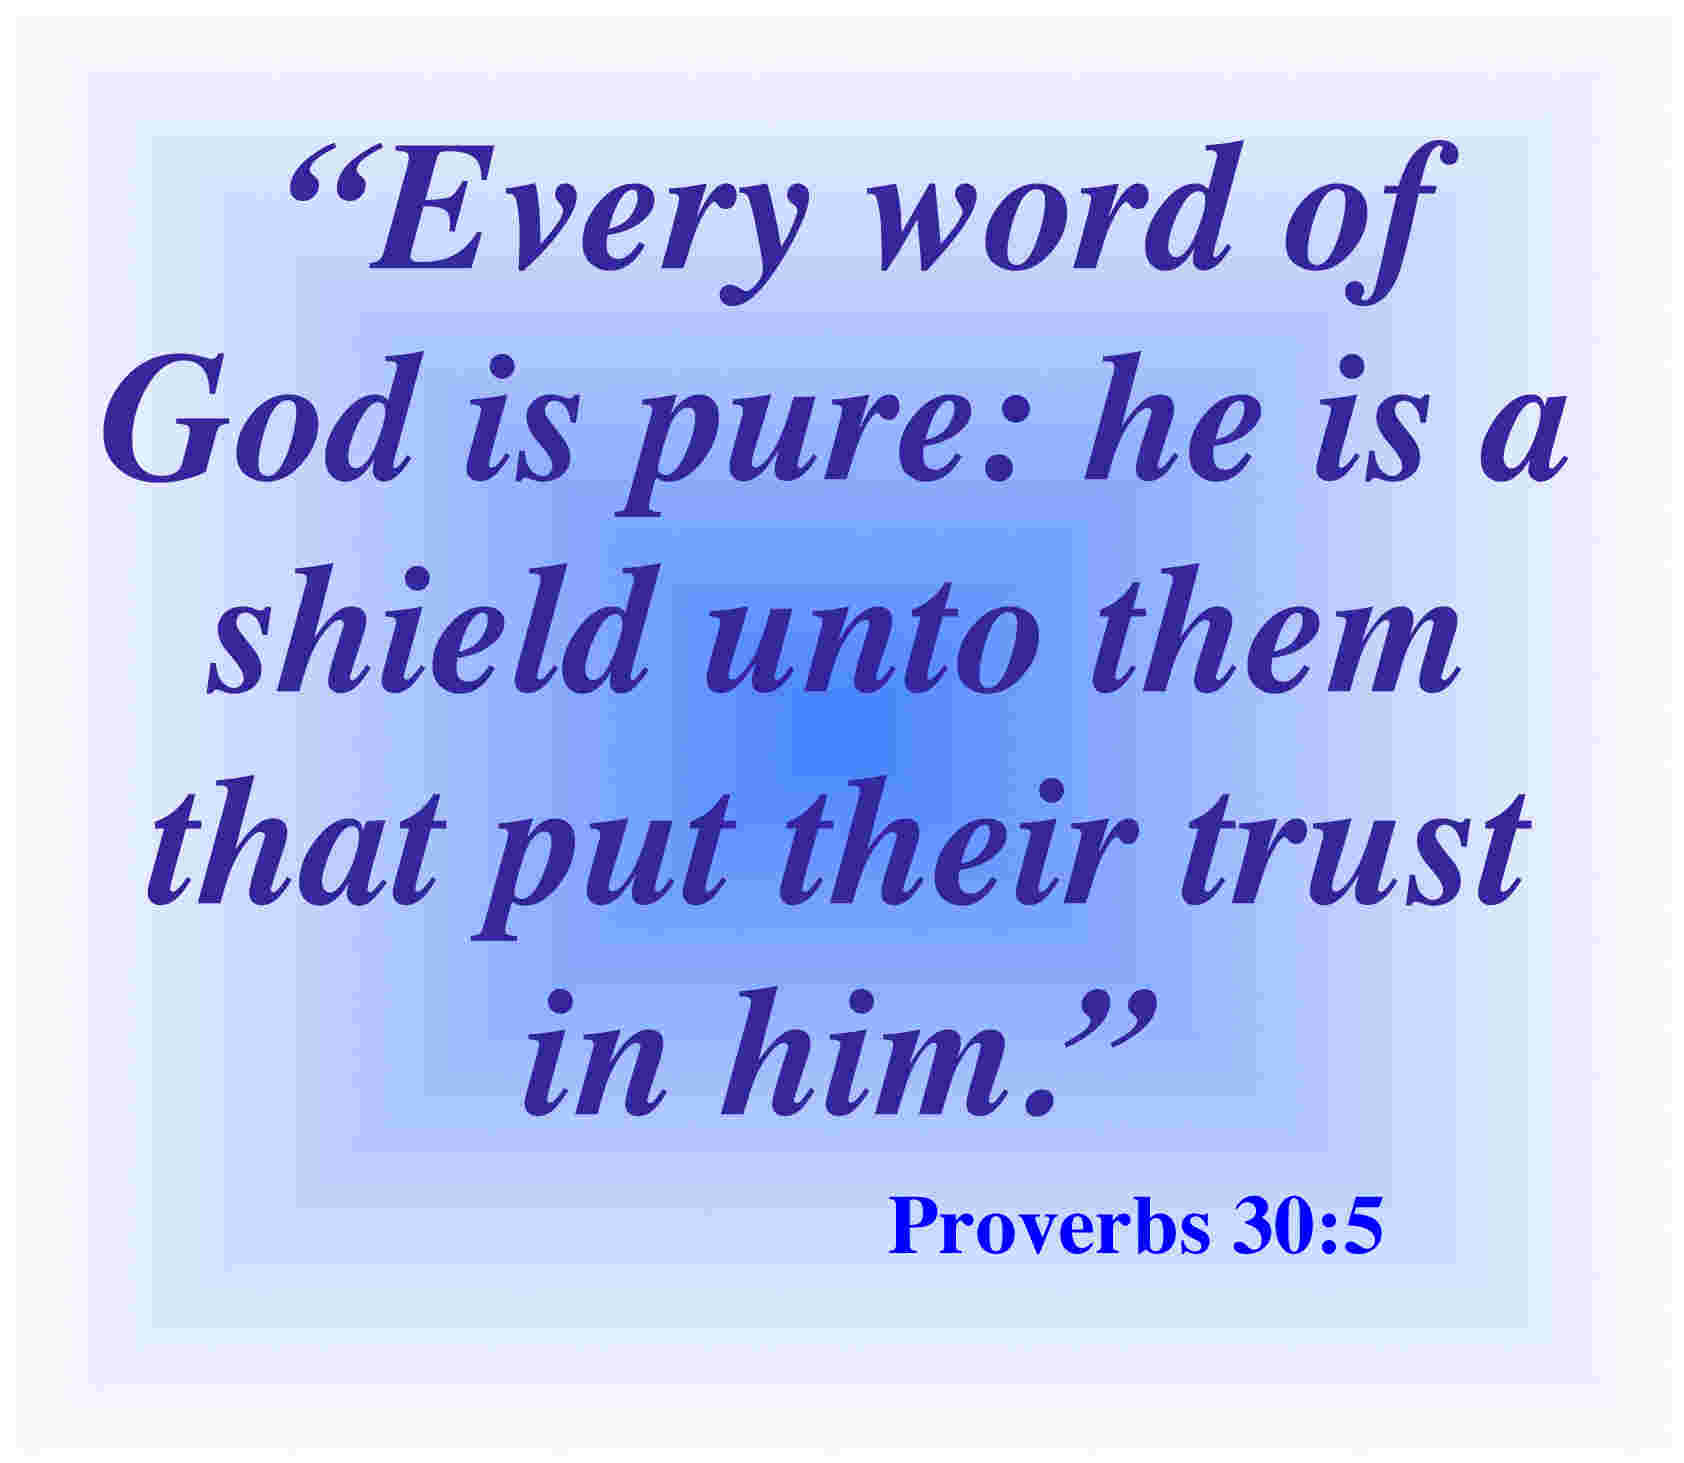 Quotes About Good People: Bible Quotes About Good People. QuotesGram